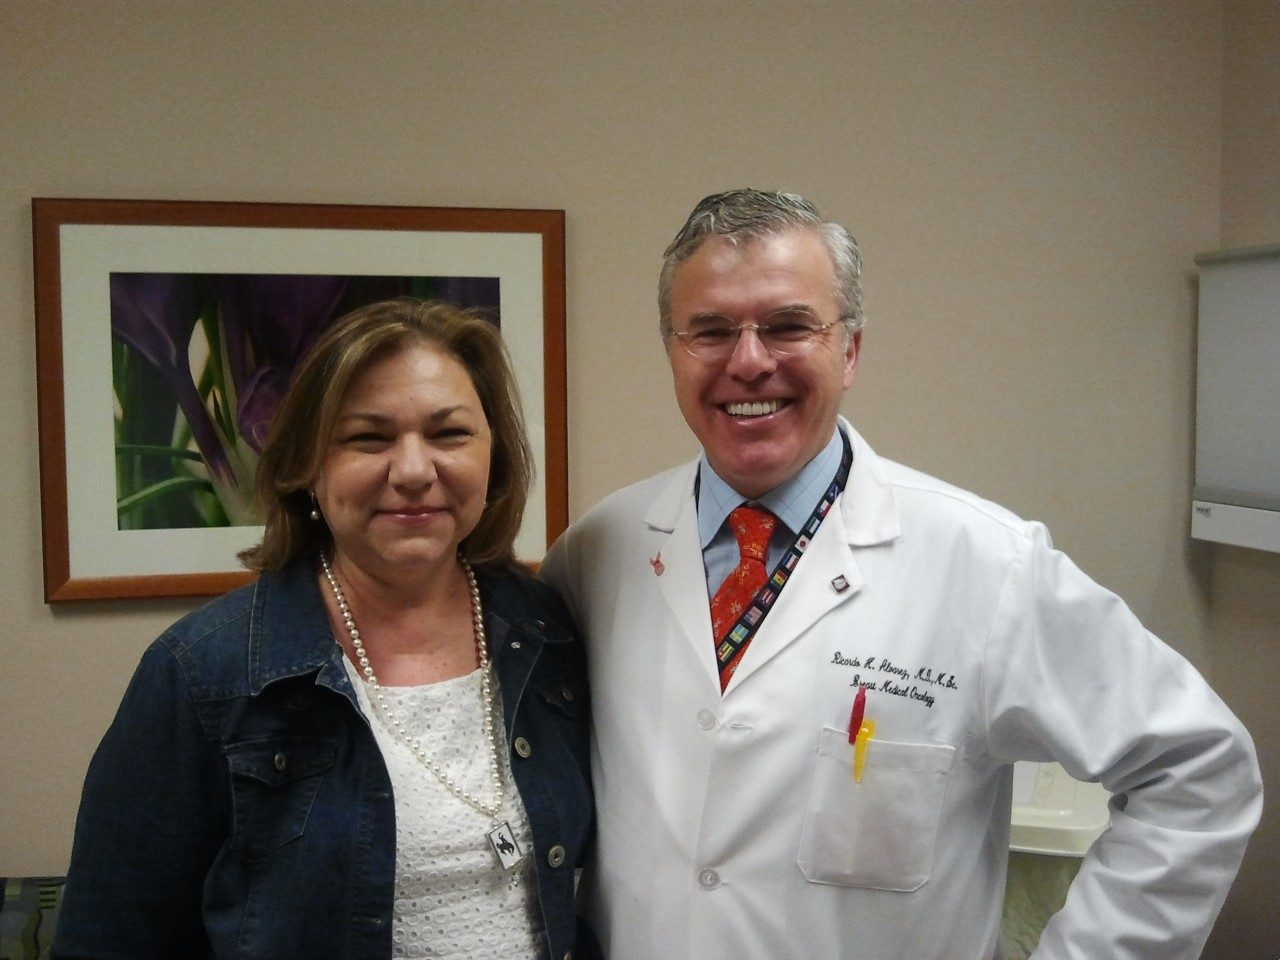 Terry Arnold with her physician